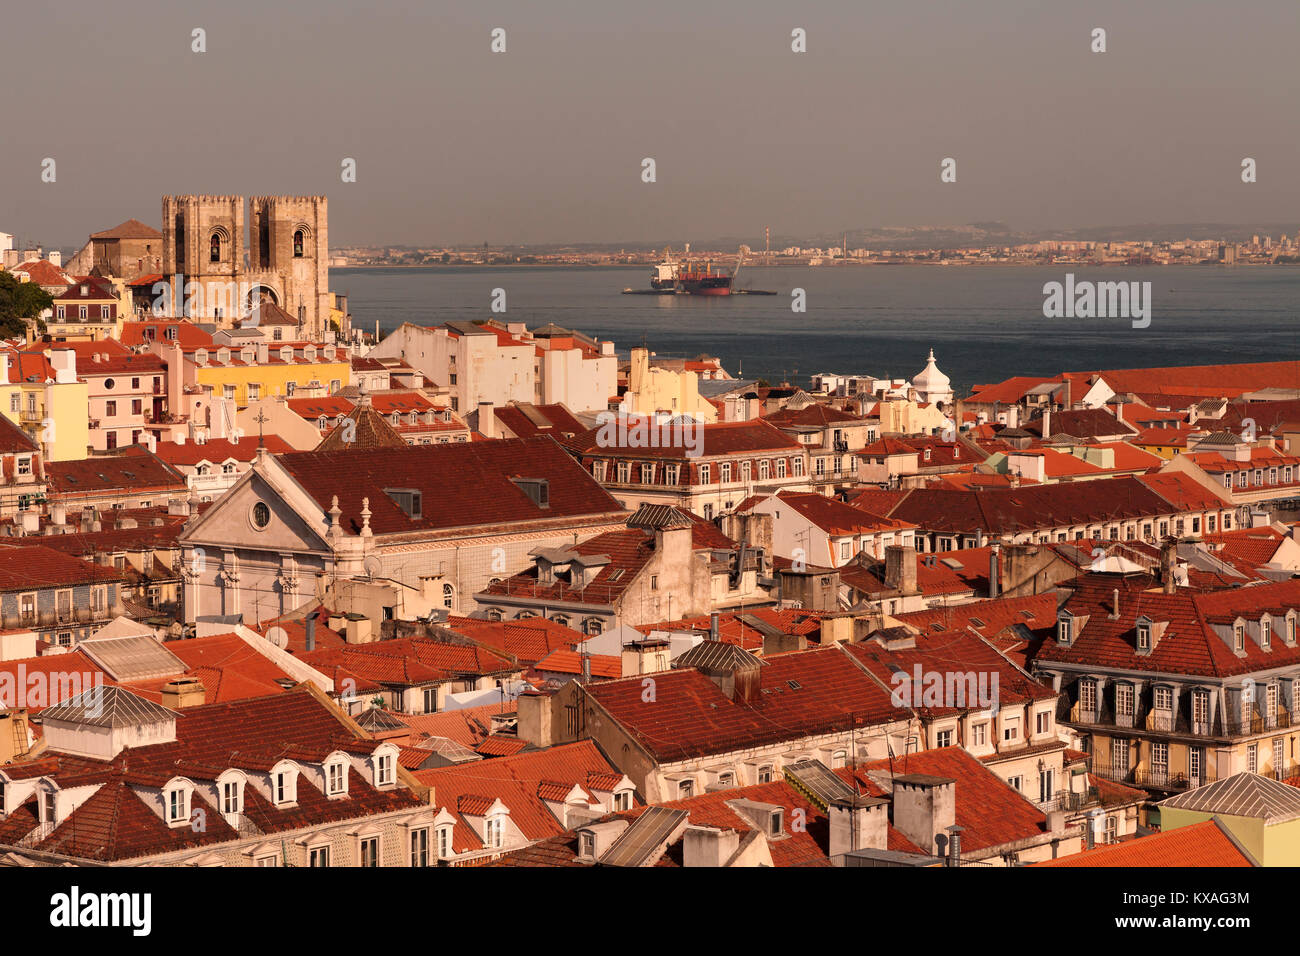 View over rooftops and cathedral Se Patriarcal,Alfama,Rio Tejo,Lisbon,Portugal - Stock Image